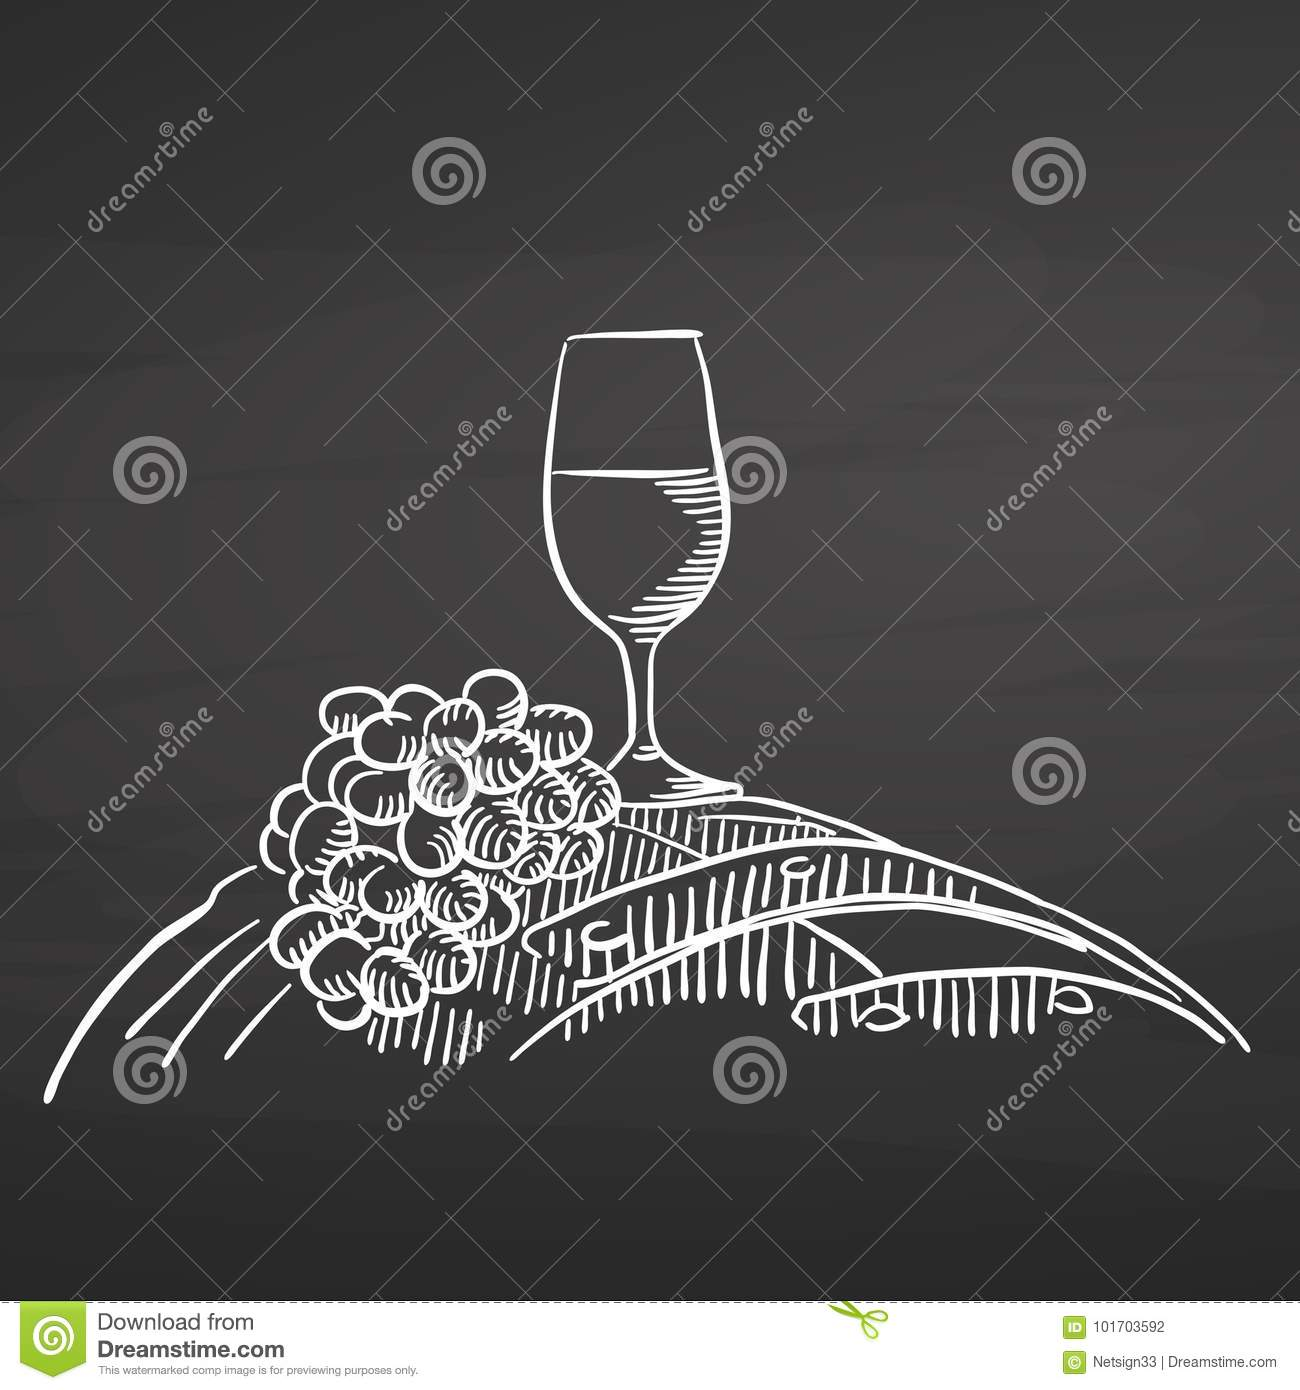 Wine glass and grapes on barrel. Chalk on chalkboard